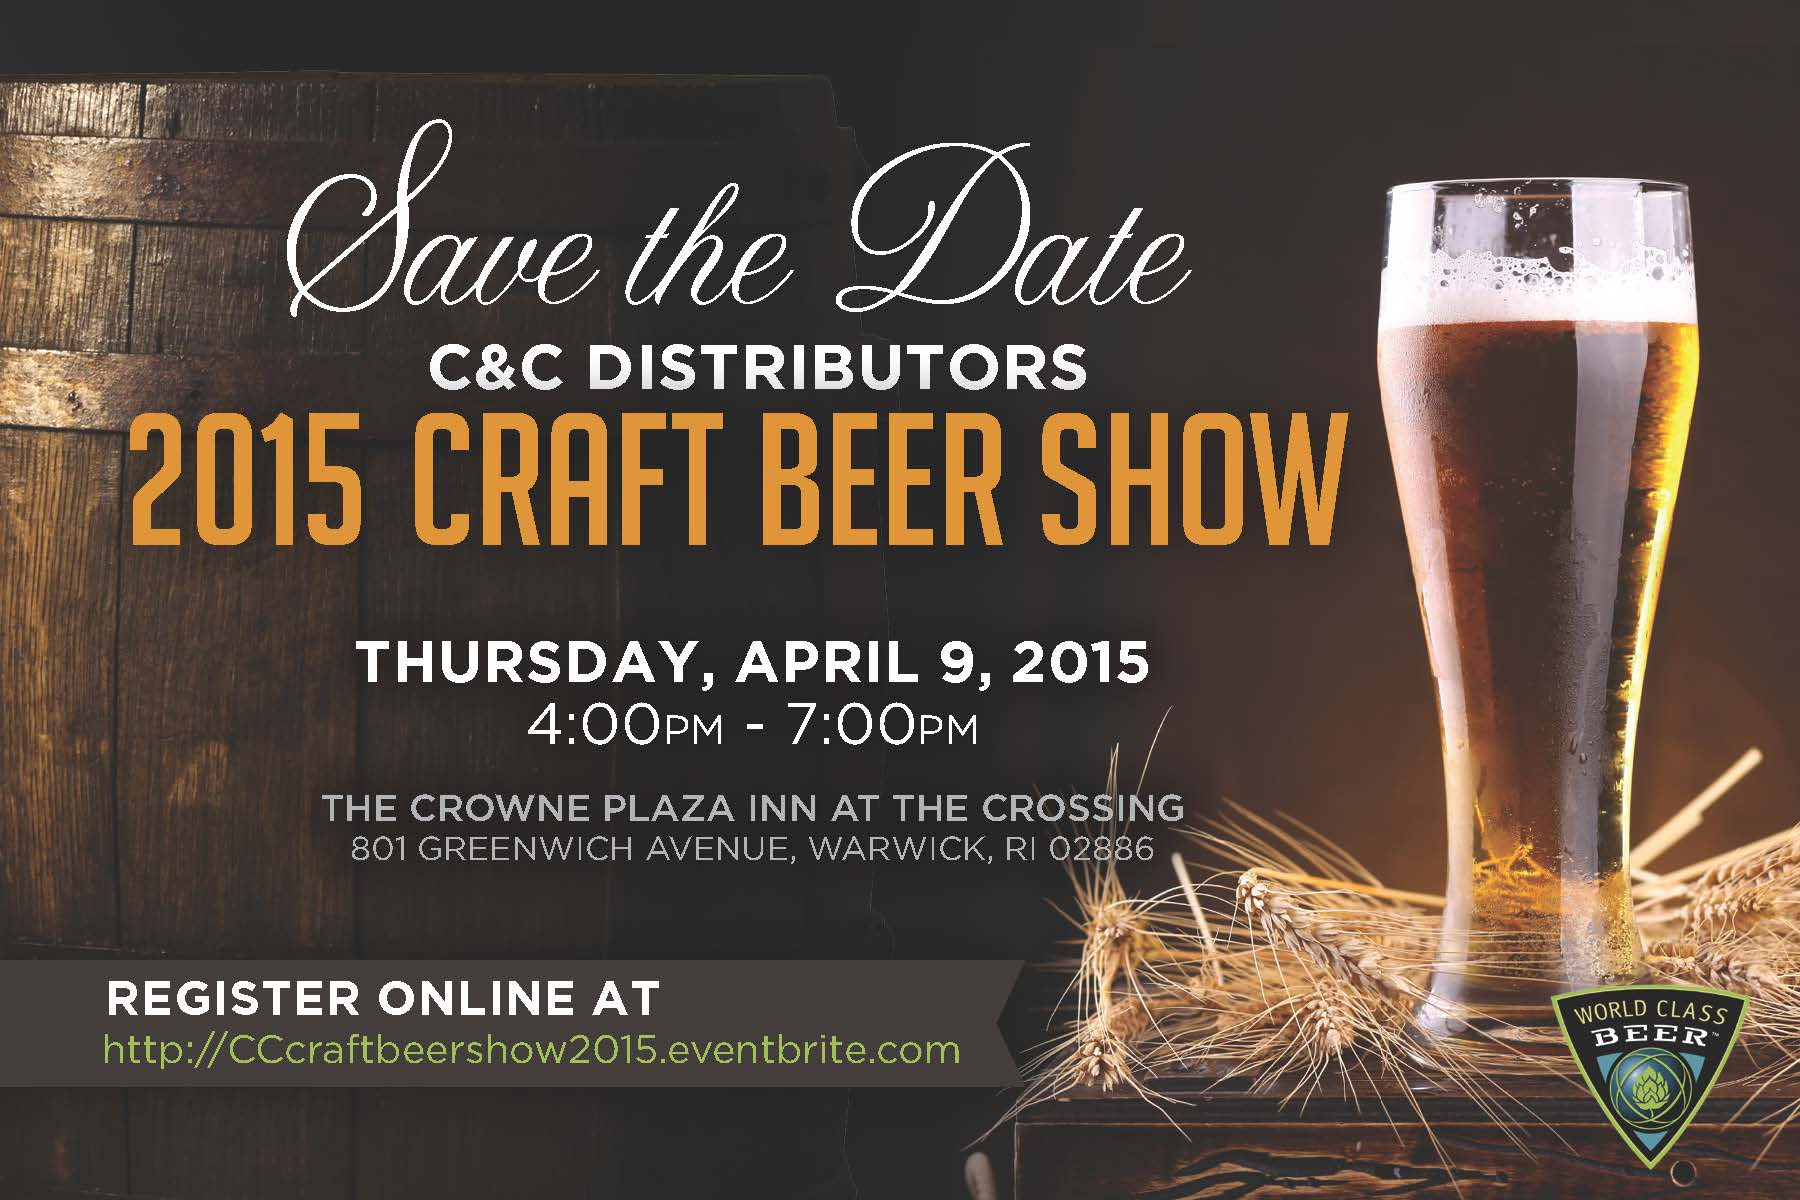 April 9, 2014: Trade-Only Event/C&C Distributors Craft Beer Show